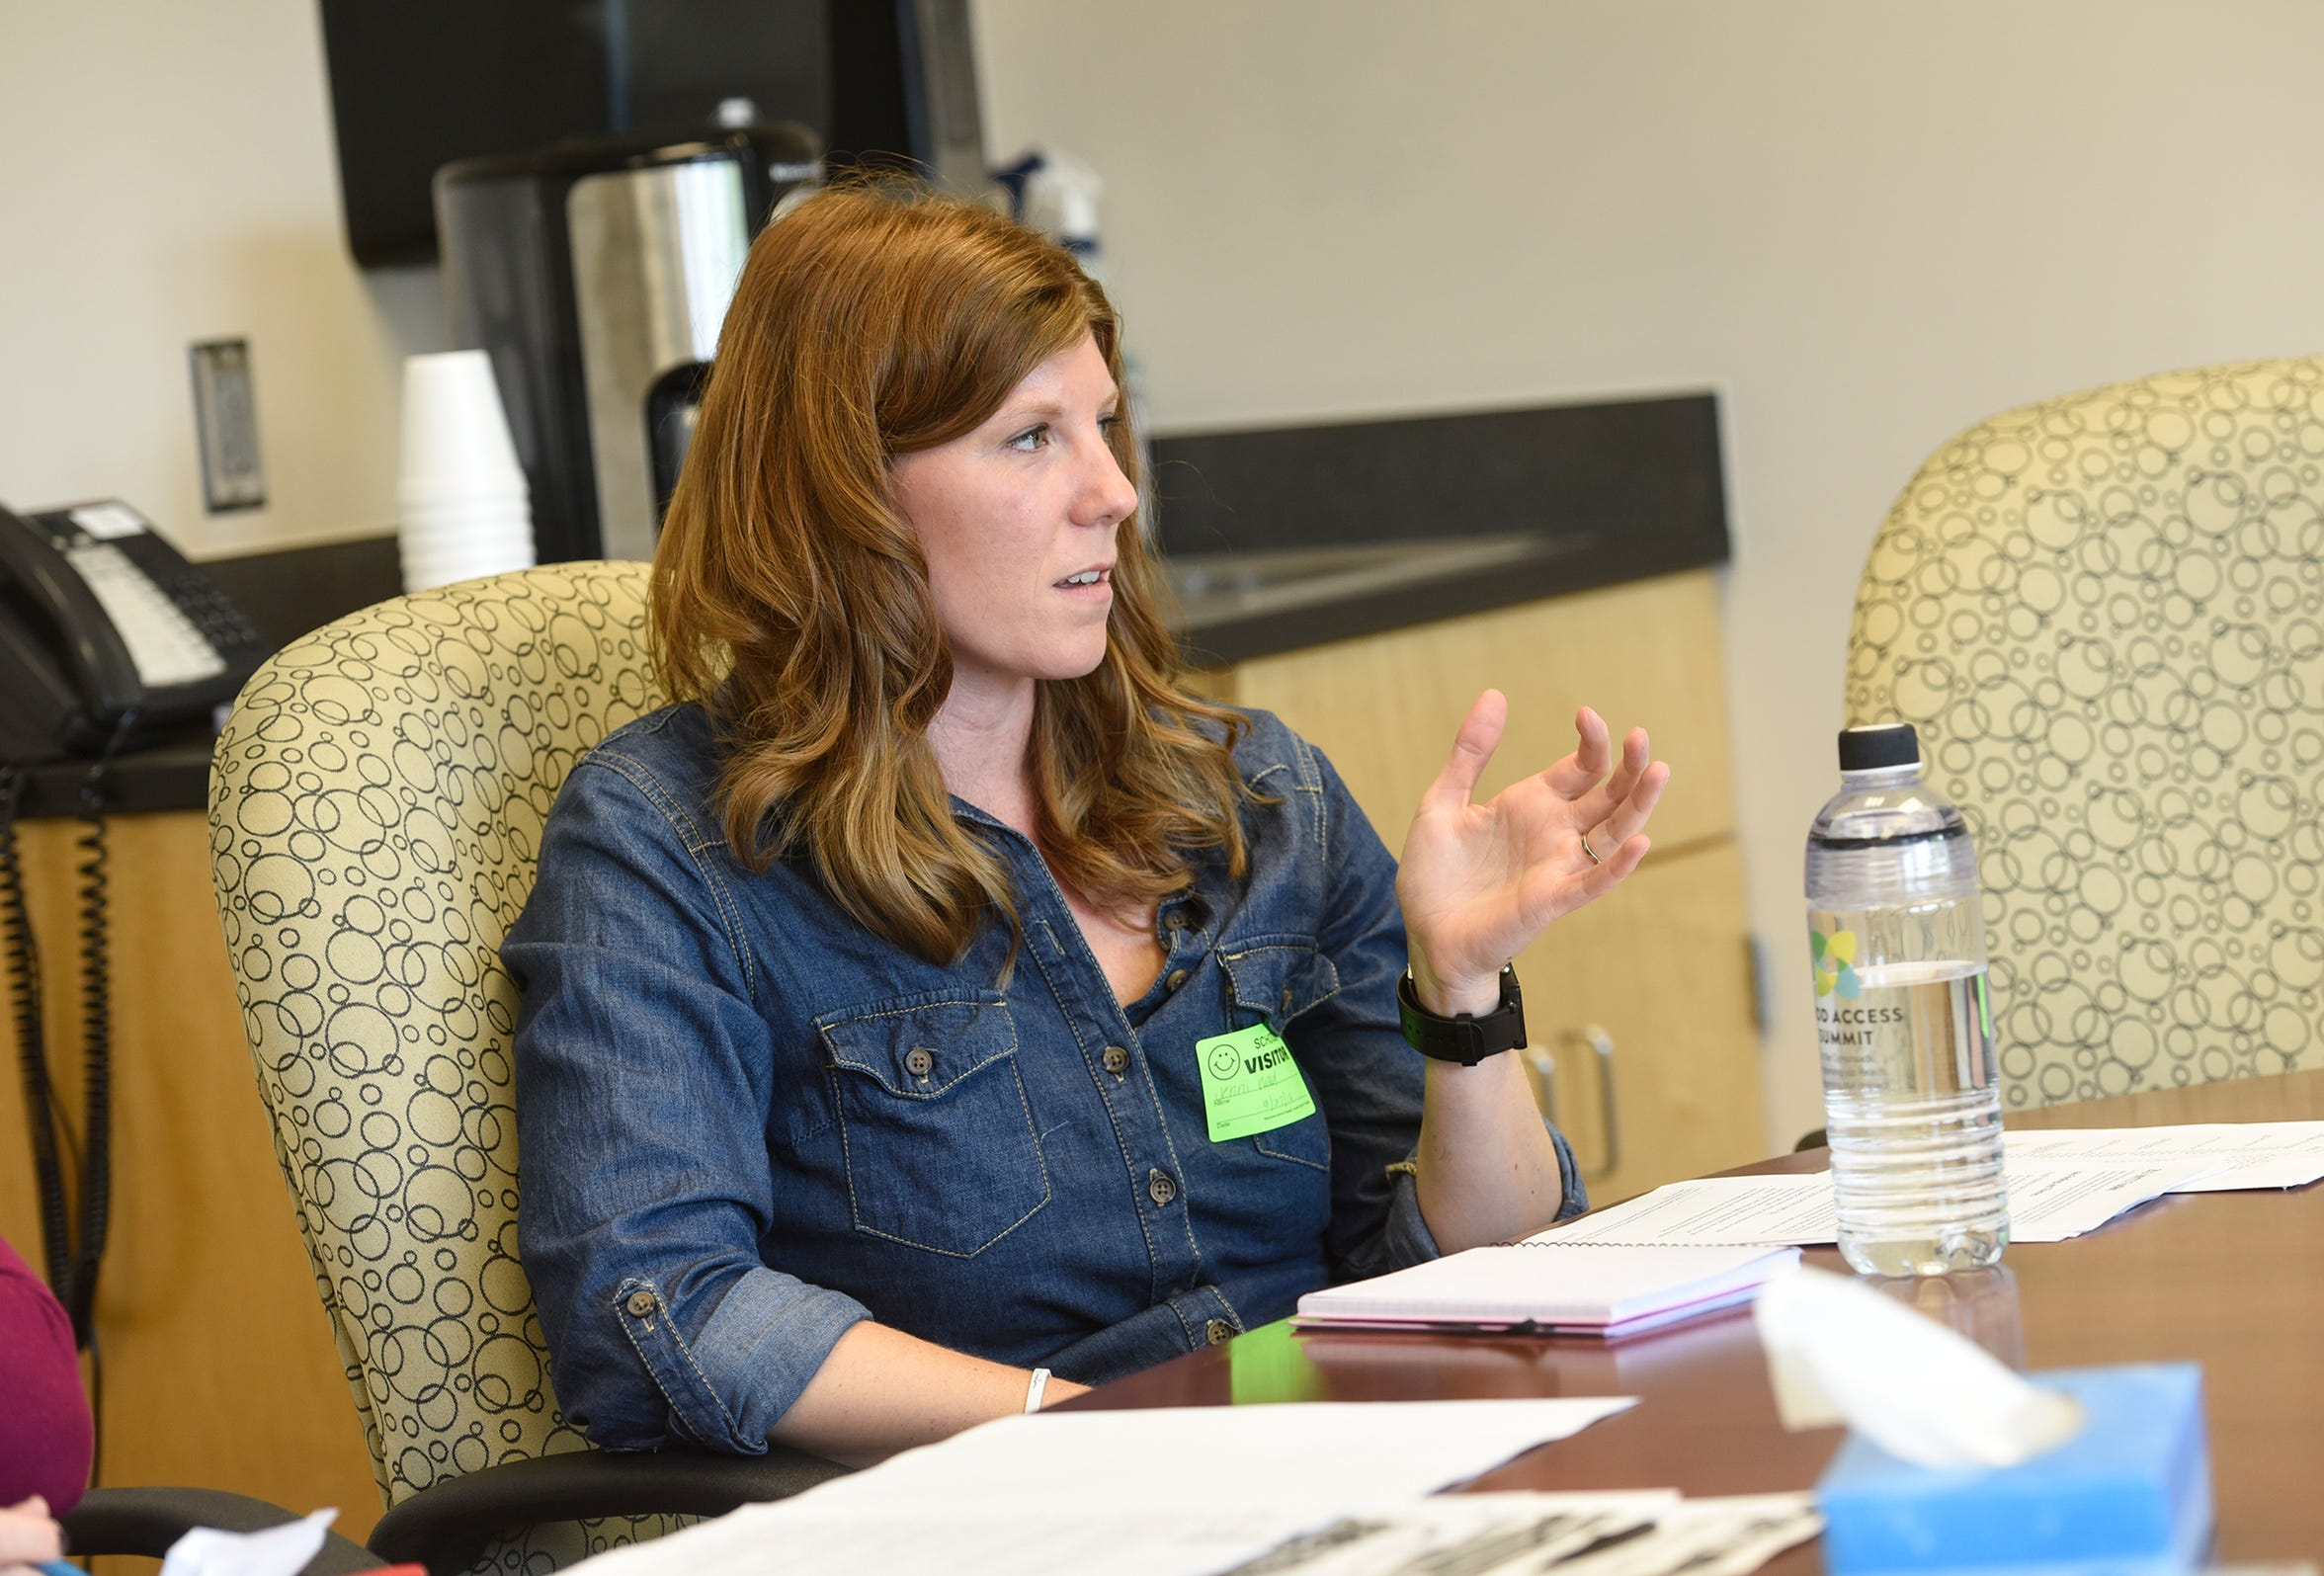 Stearns County Public Health Coordinator Jennifer Wald speaks during an interview Thursday, Sept. 25, in Sauk Rapids.